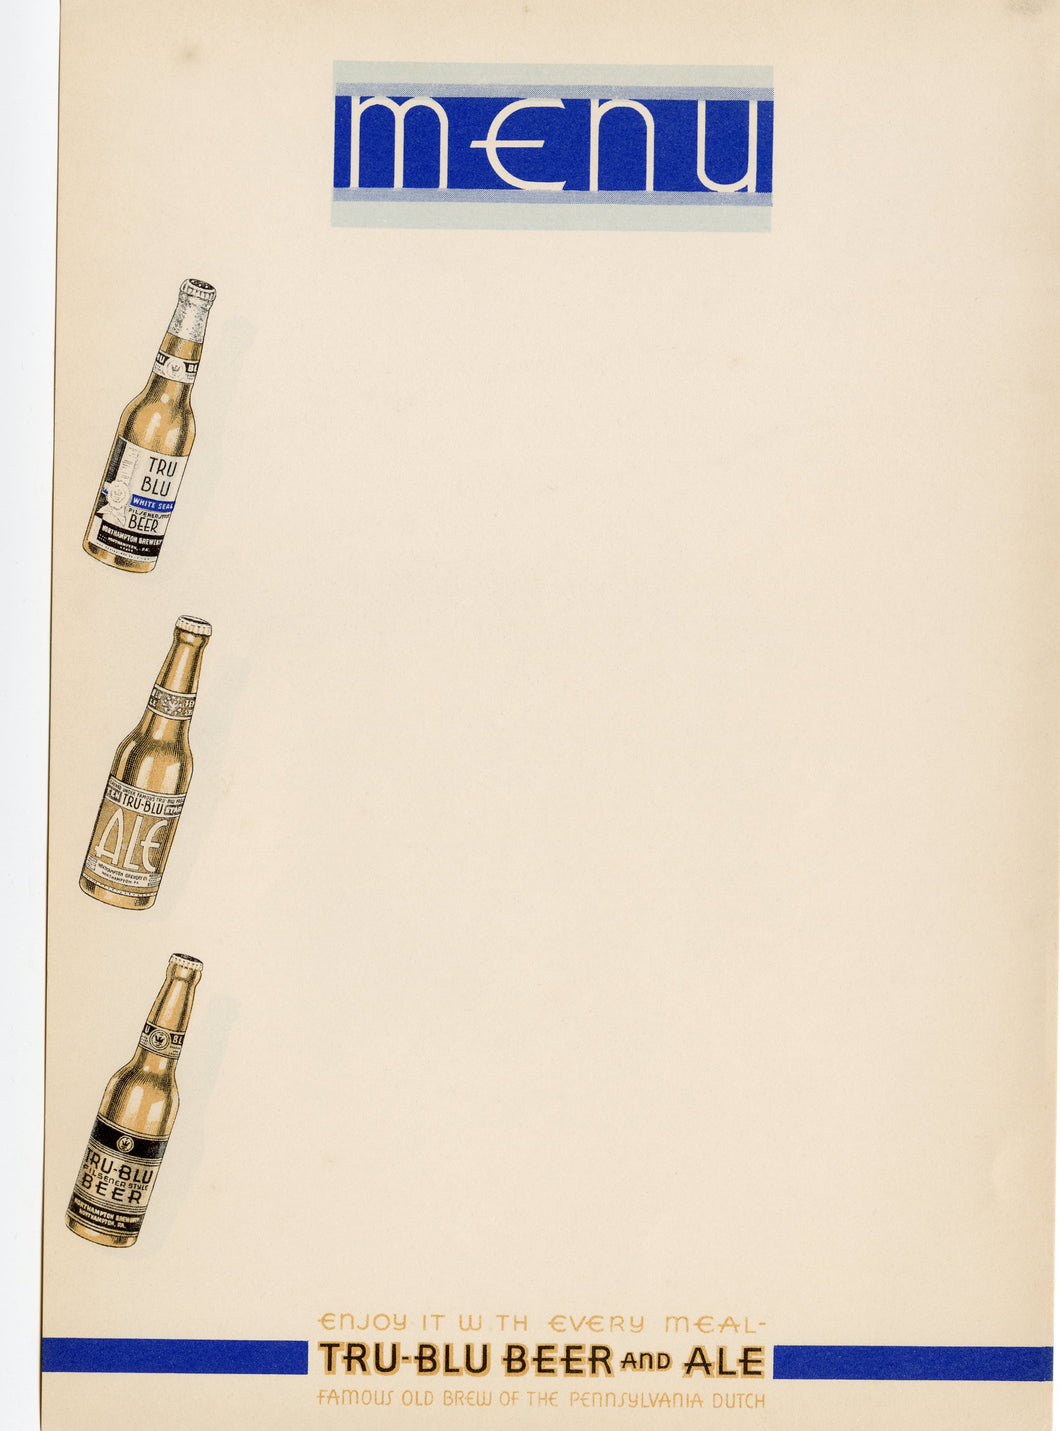 Art Deco TRU-BLU Beer and Ale Menu Blank Paper, Pennsylvania Dutch